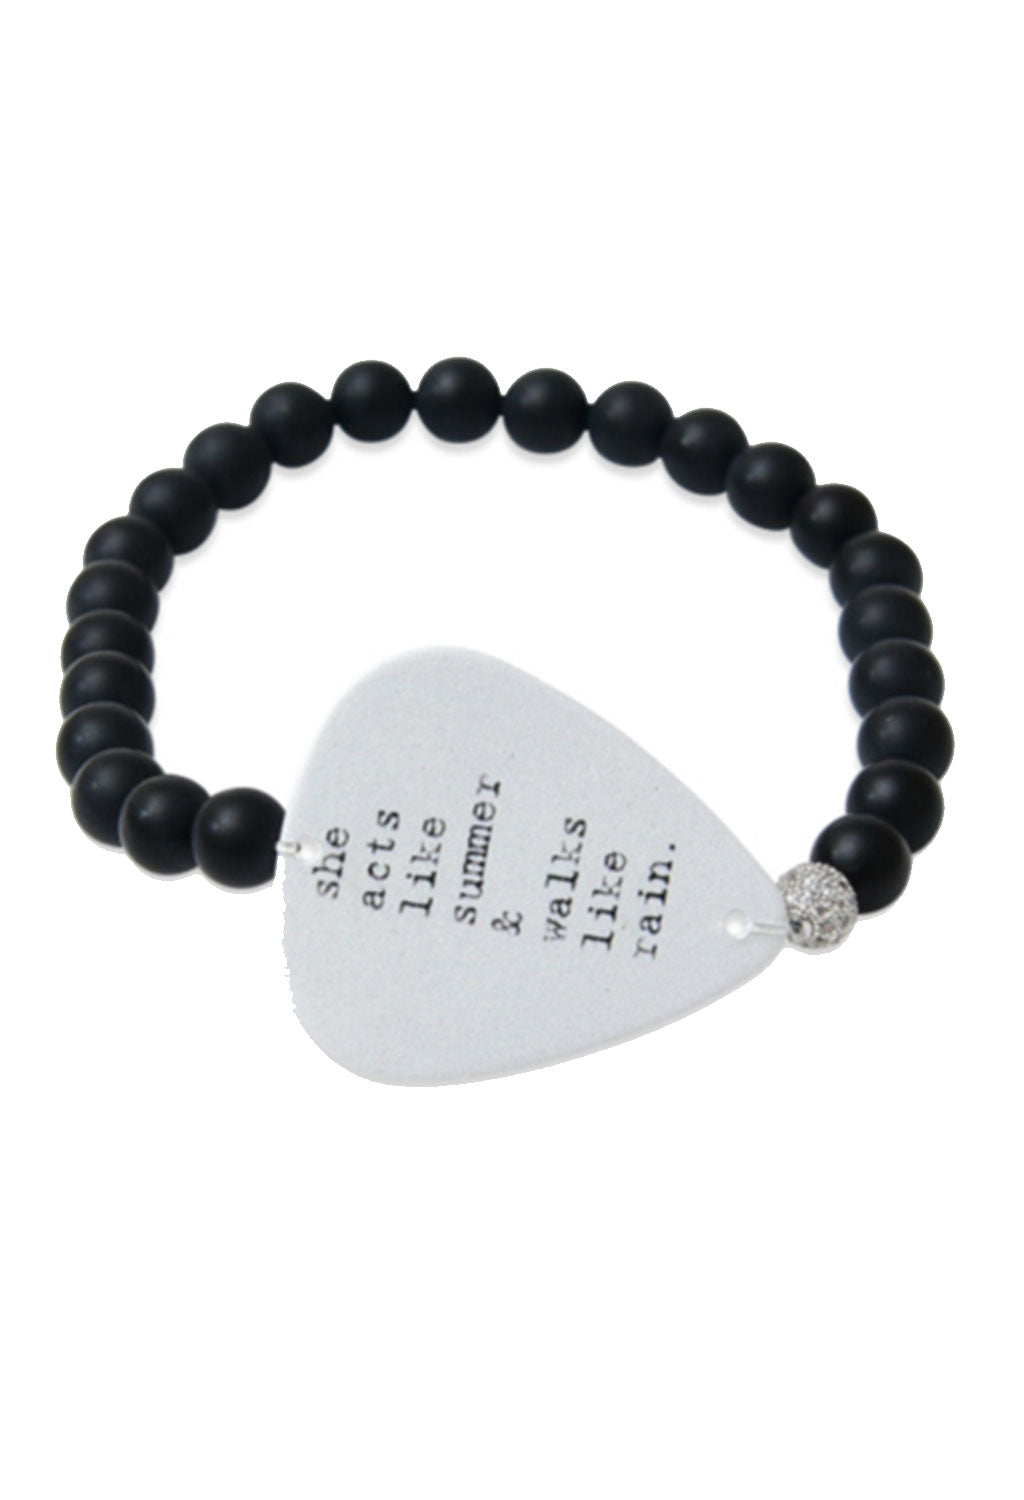 Black Onyx 'She Walks Like Rain' Bracelet